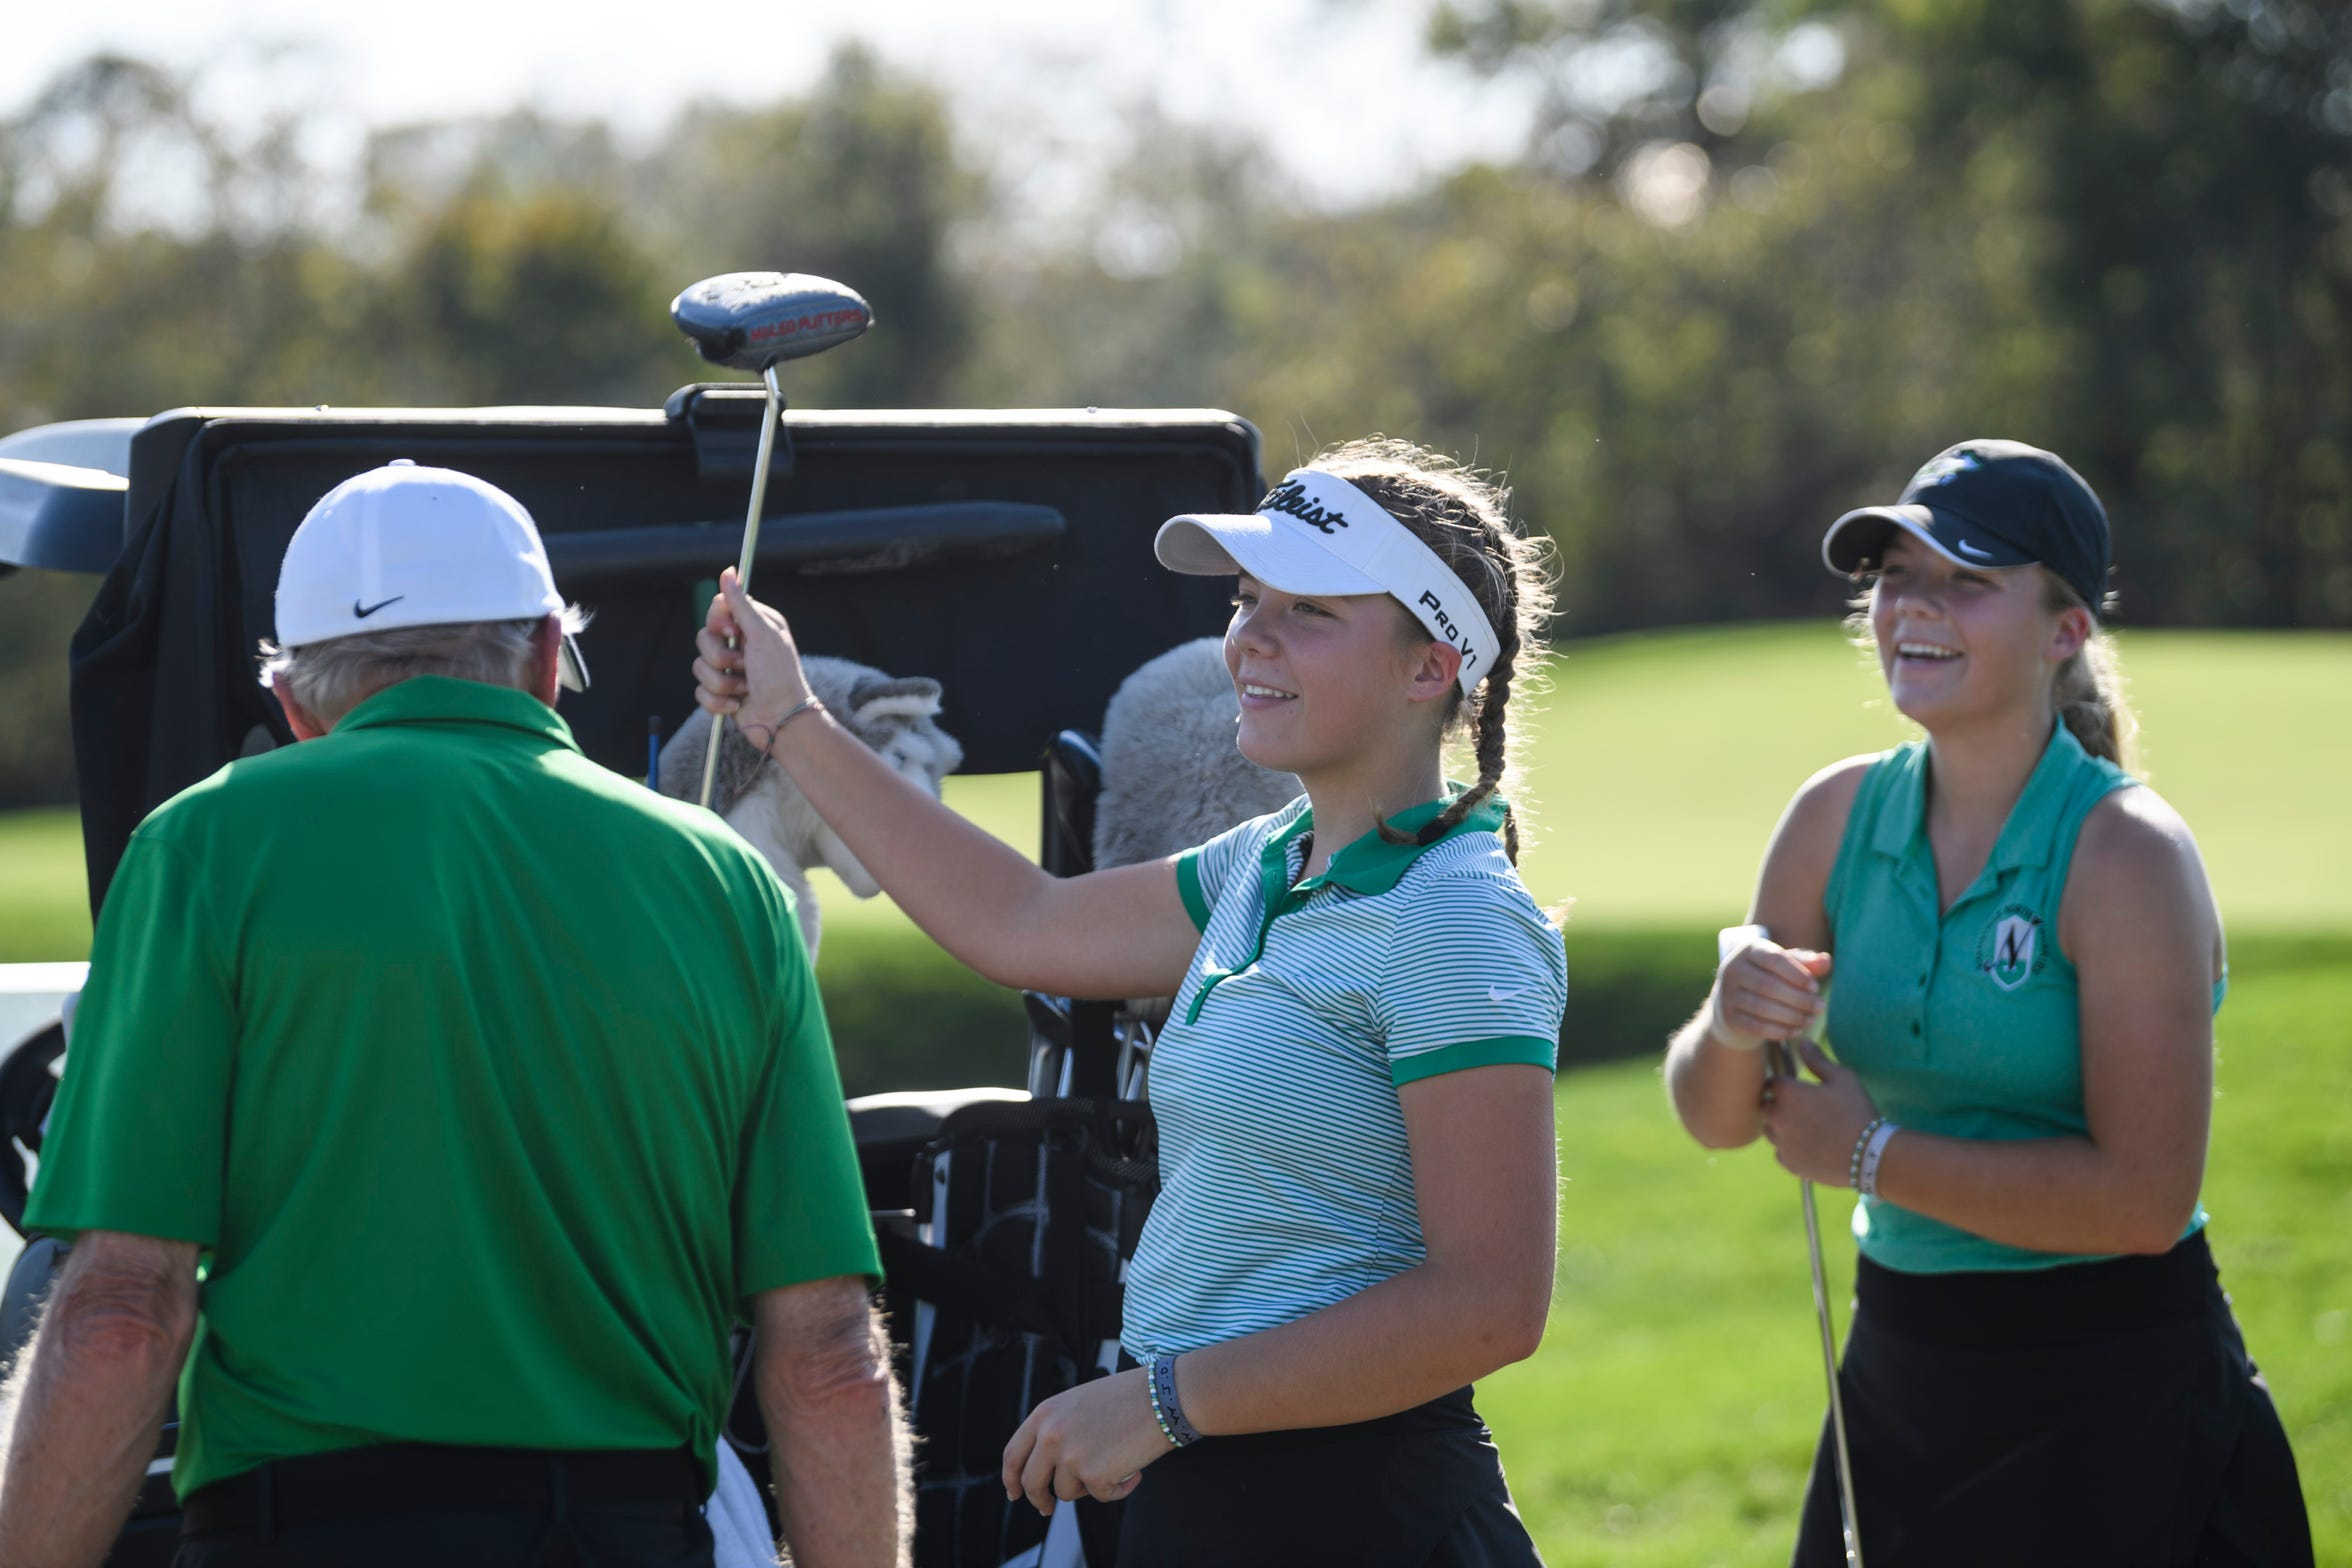 North Girls' Golf Coach Ken Wempe, from left, jokes around with sophomore twins Faith and Chloe Johnson during practice at Victoria National Golf Club in Newburgh, Ind., Wednesday afternoon, Oct. 2, 2019. The team will compete for another state championship at Prairie View Golf Club in Carmel, Ind., this weekend.